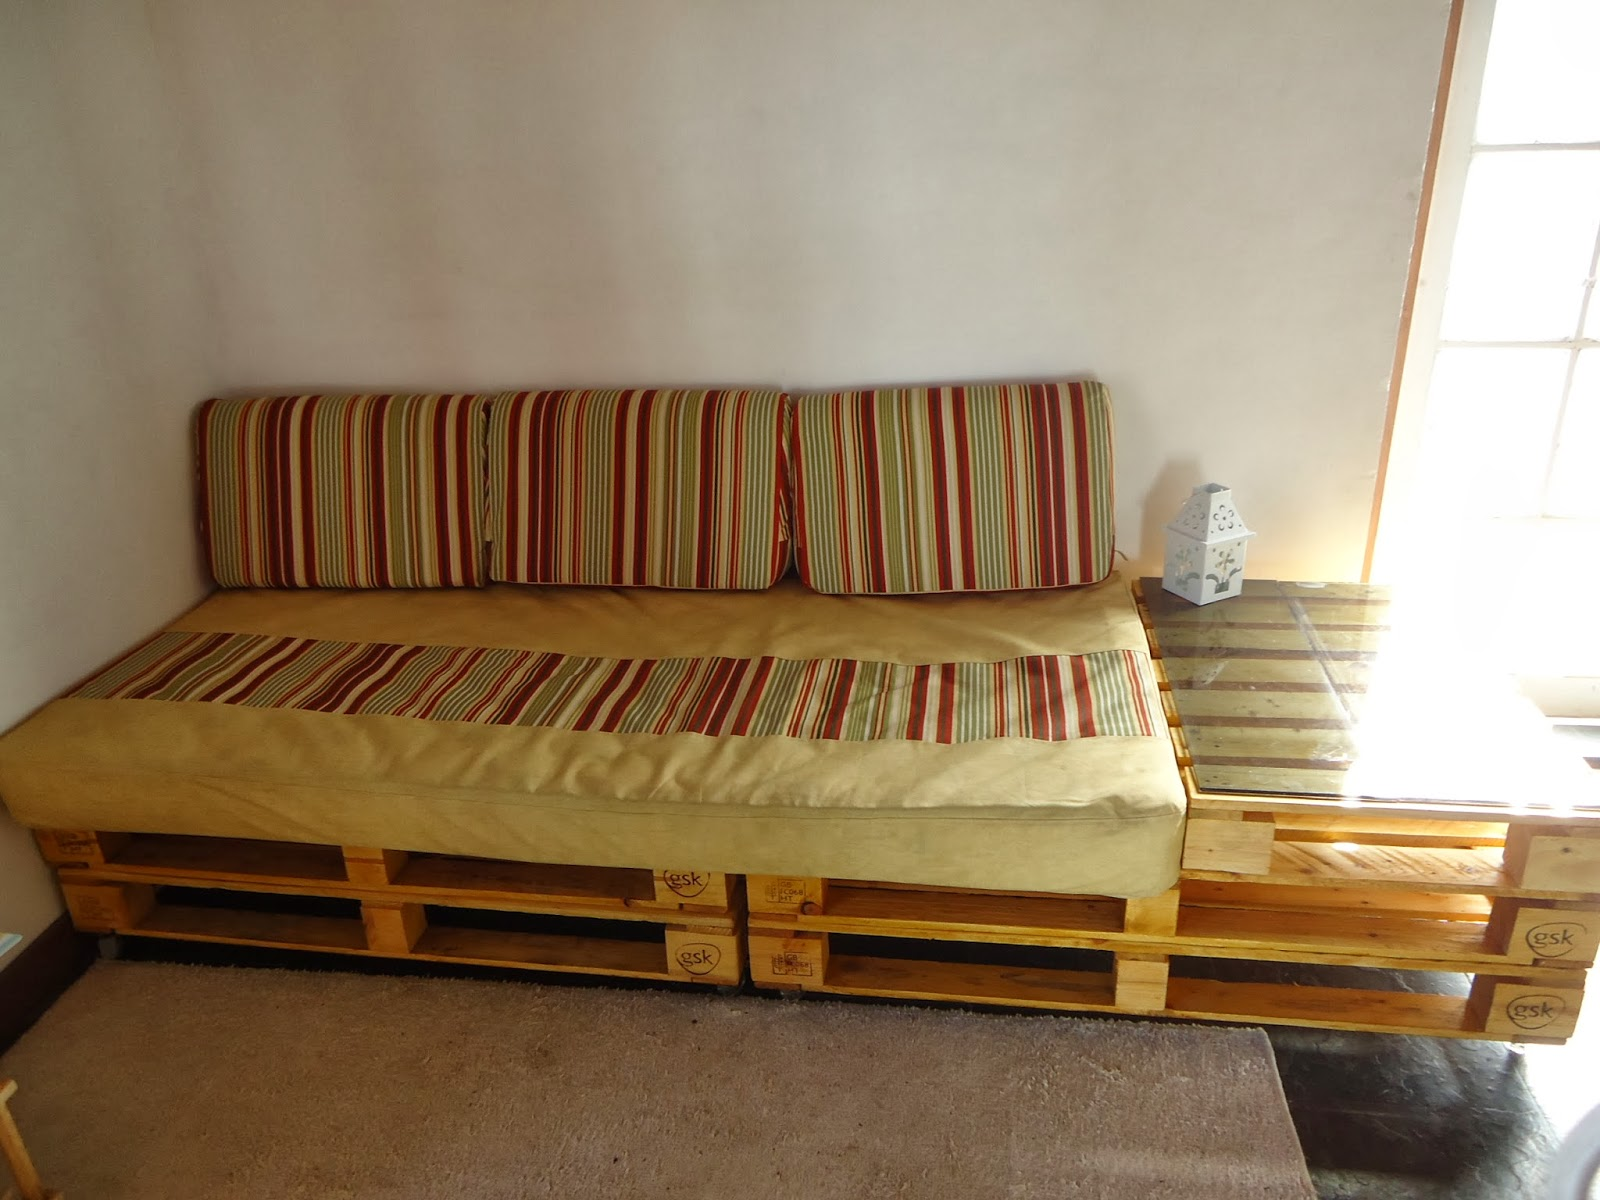 Casa com pallet novembro 2013 for Sofa reciclado